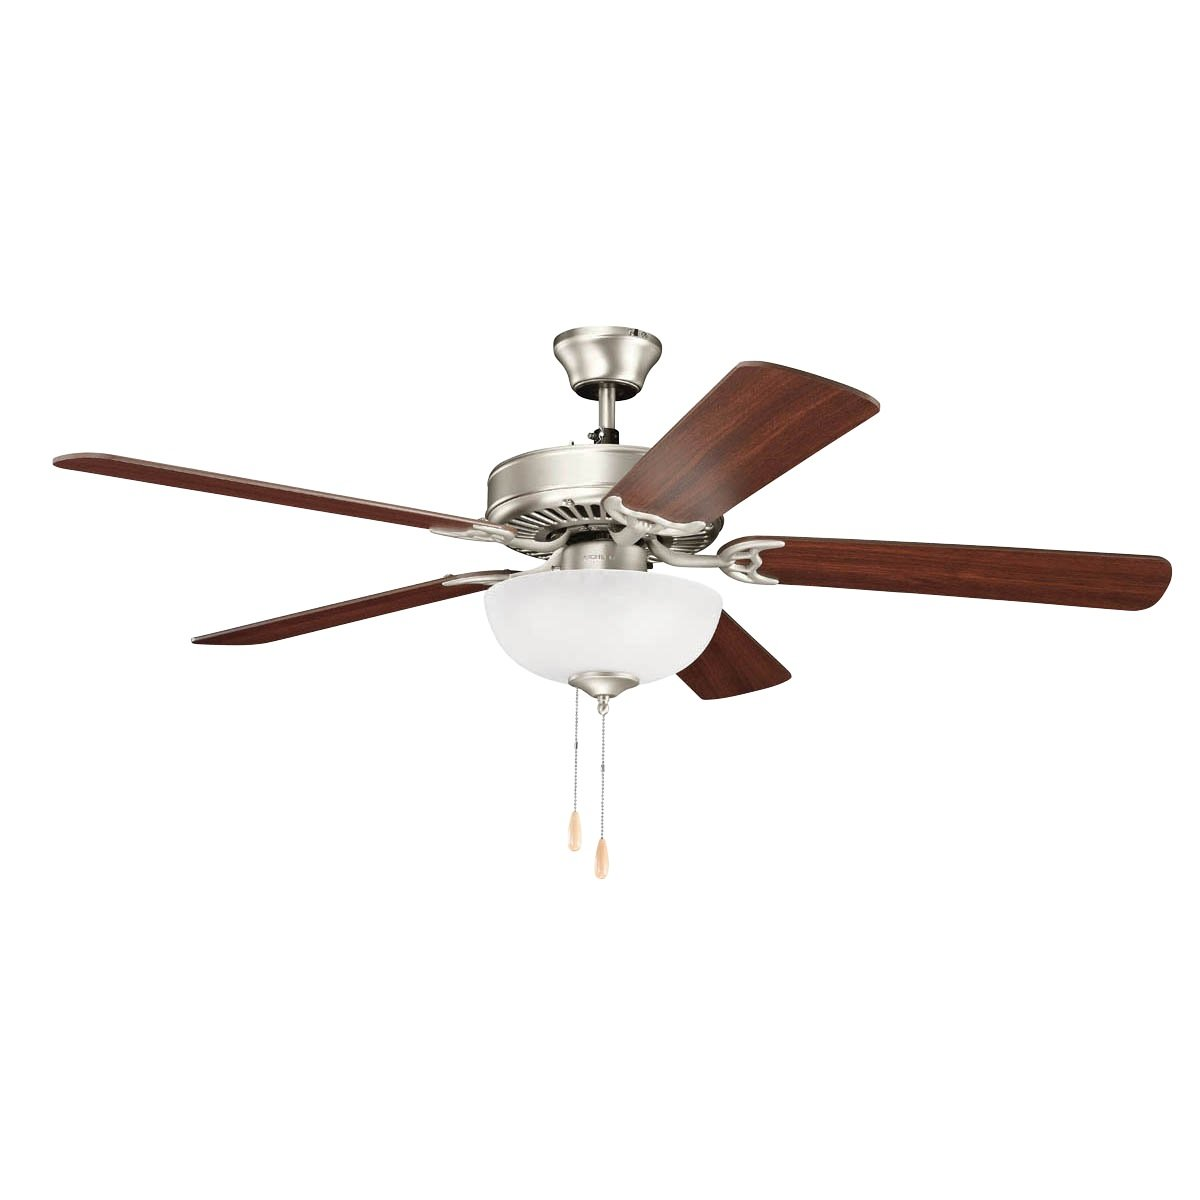 """Kichler 403NI7 Basics Select 52"""" Ceiling Fan with Lights, Brushed Nickel"""